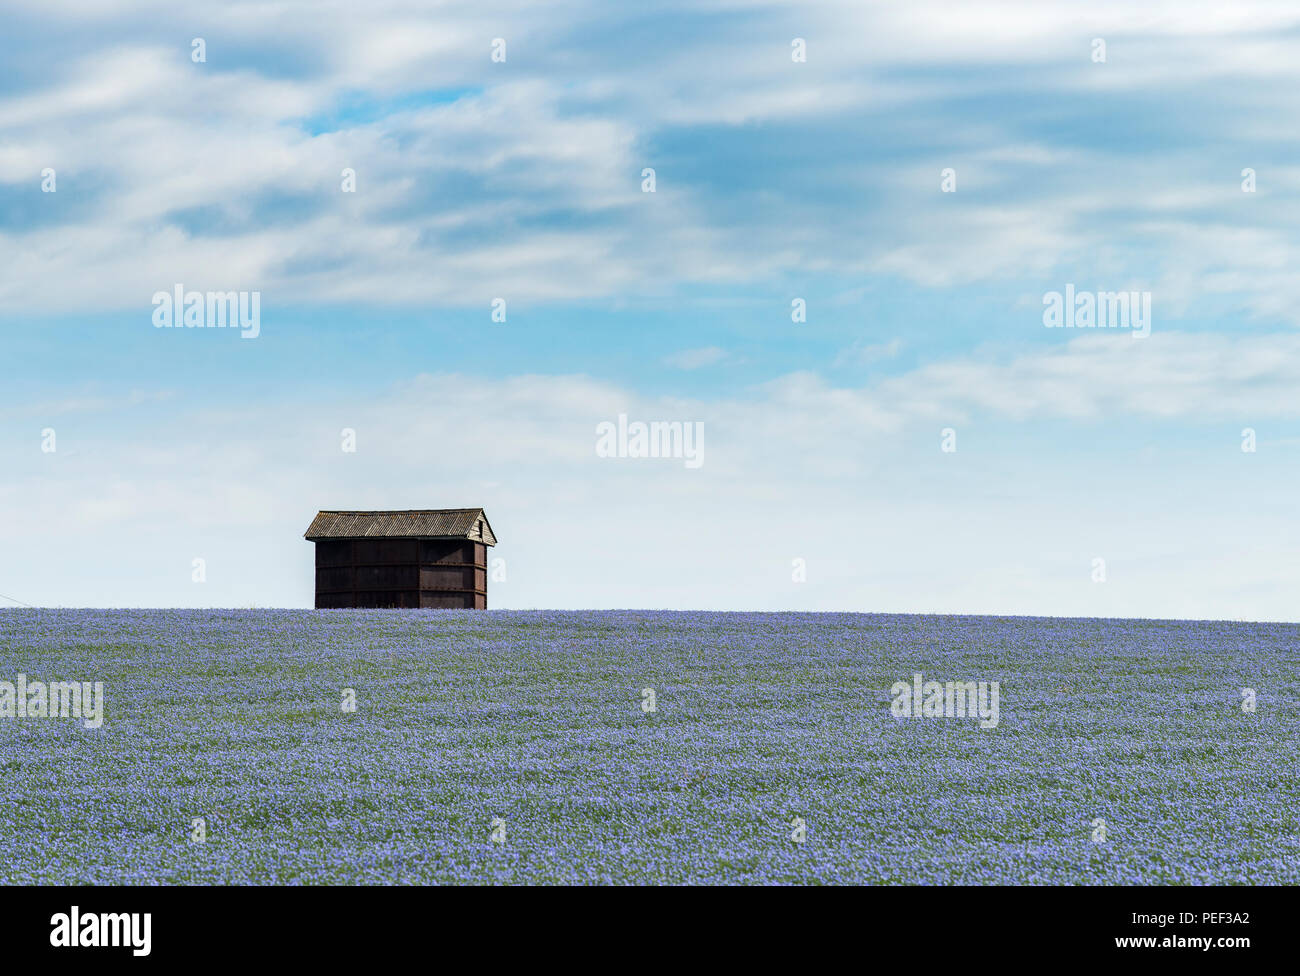 A barn in fields of blue flax in the Kent Downs AONB. - Stock Image